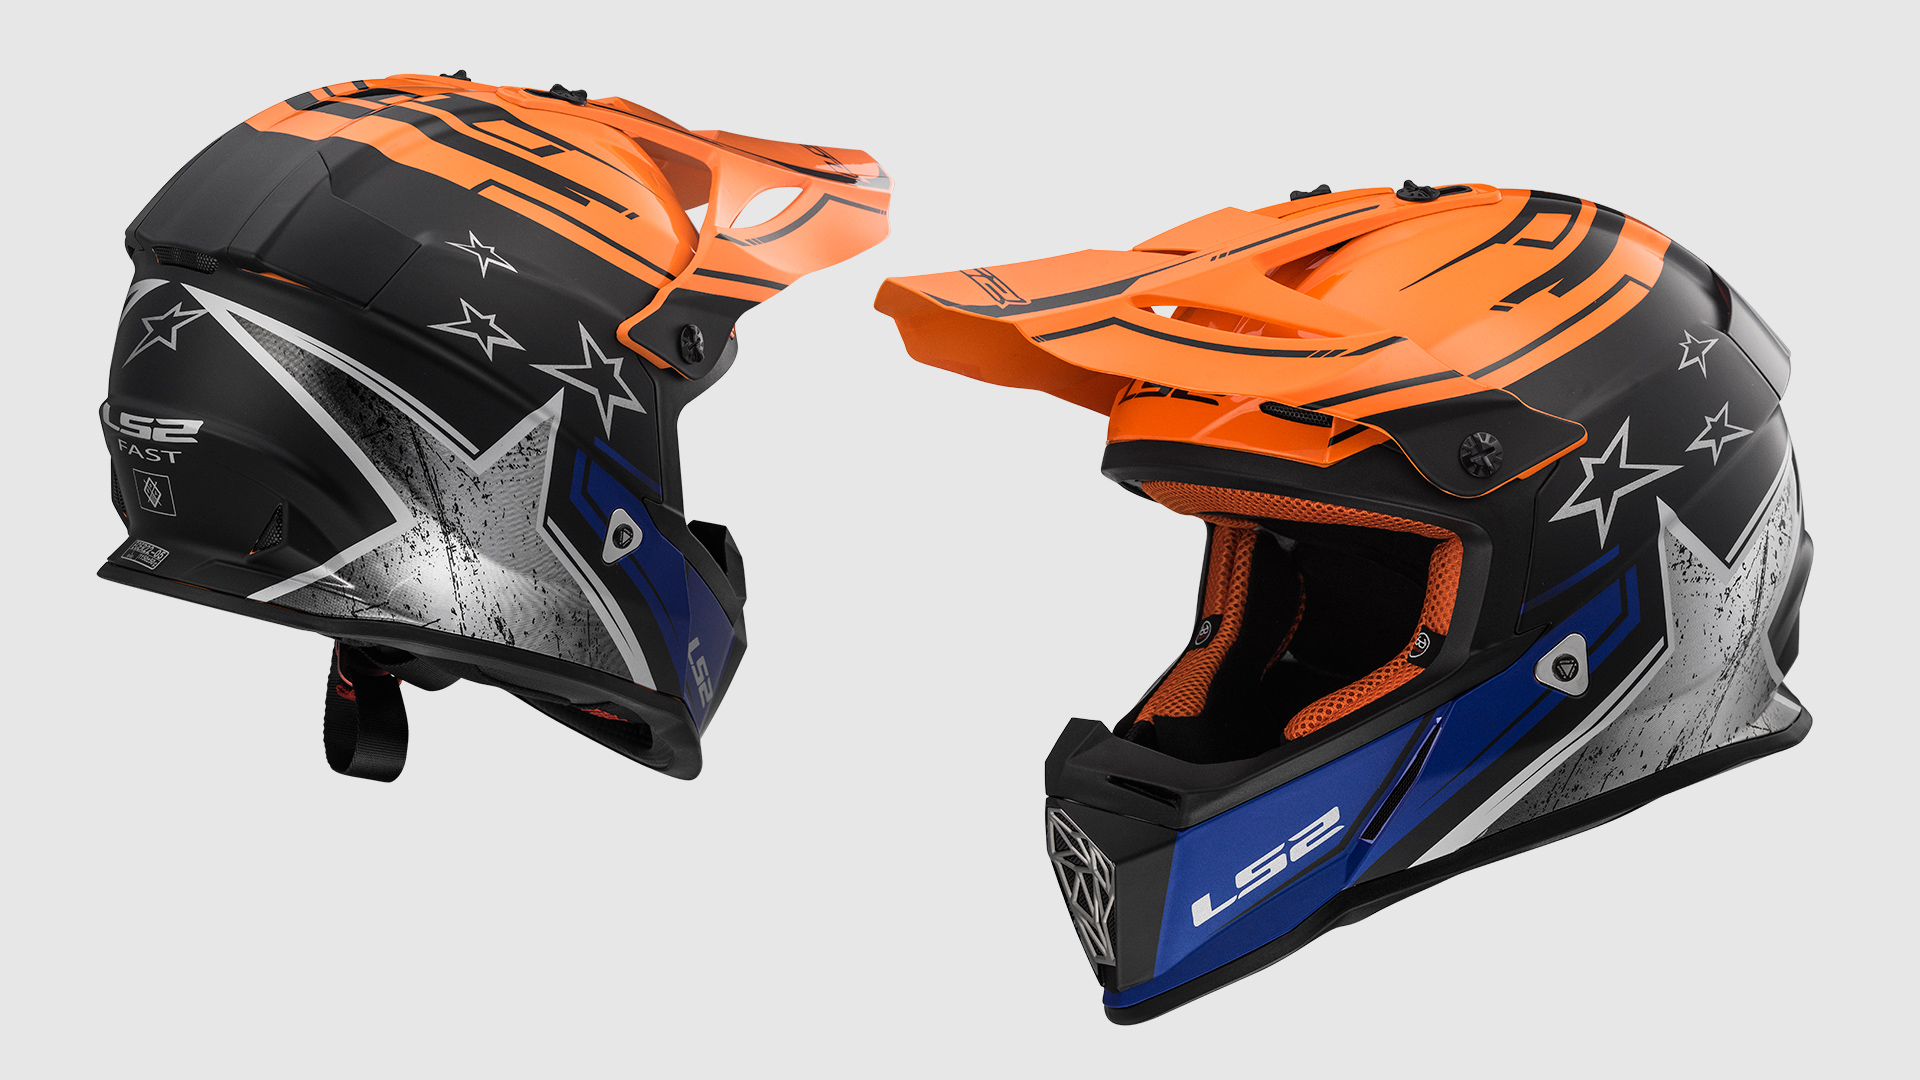 (which helmet is best in India)